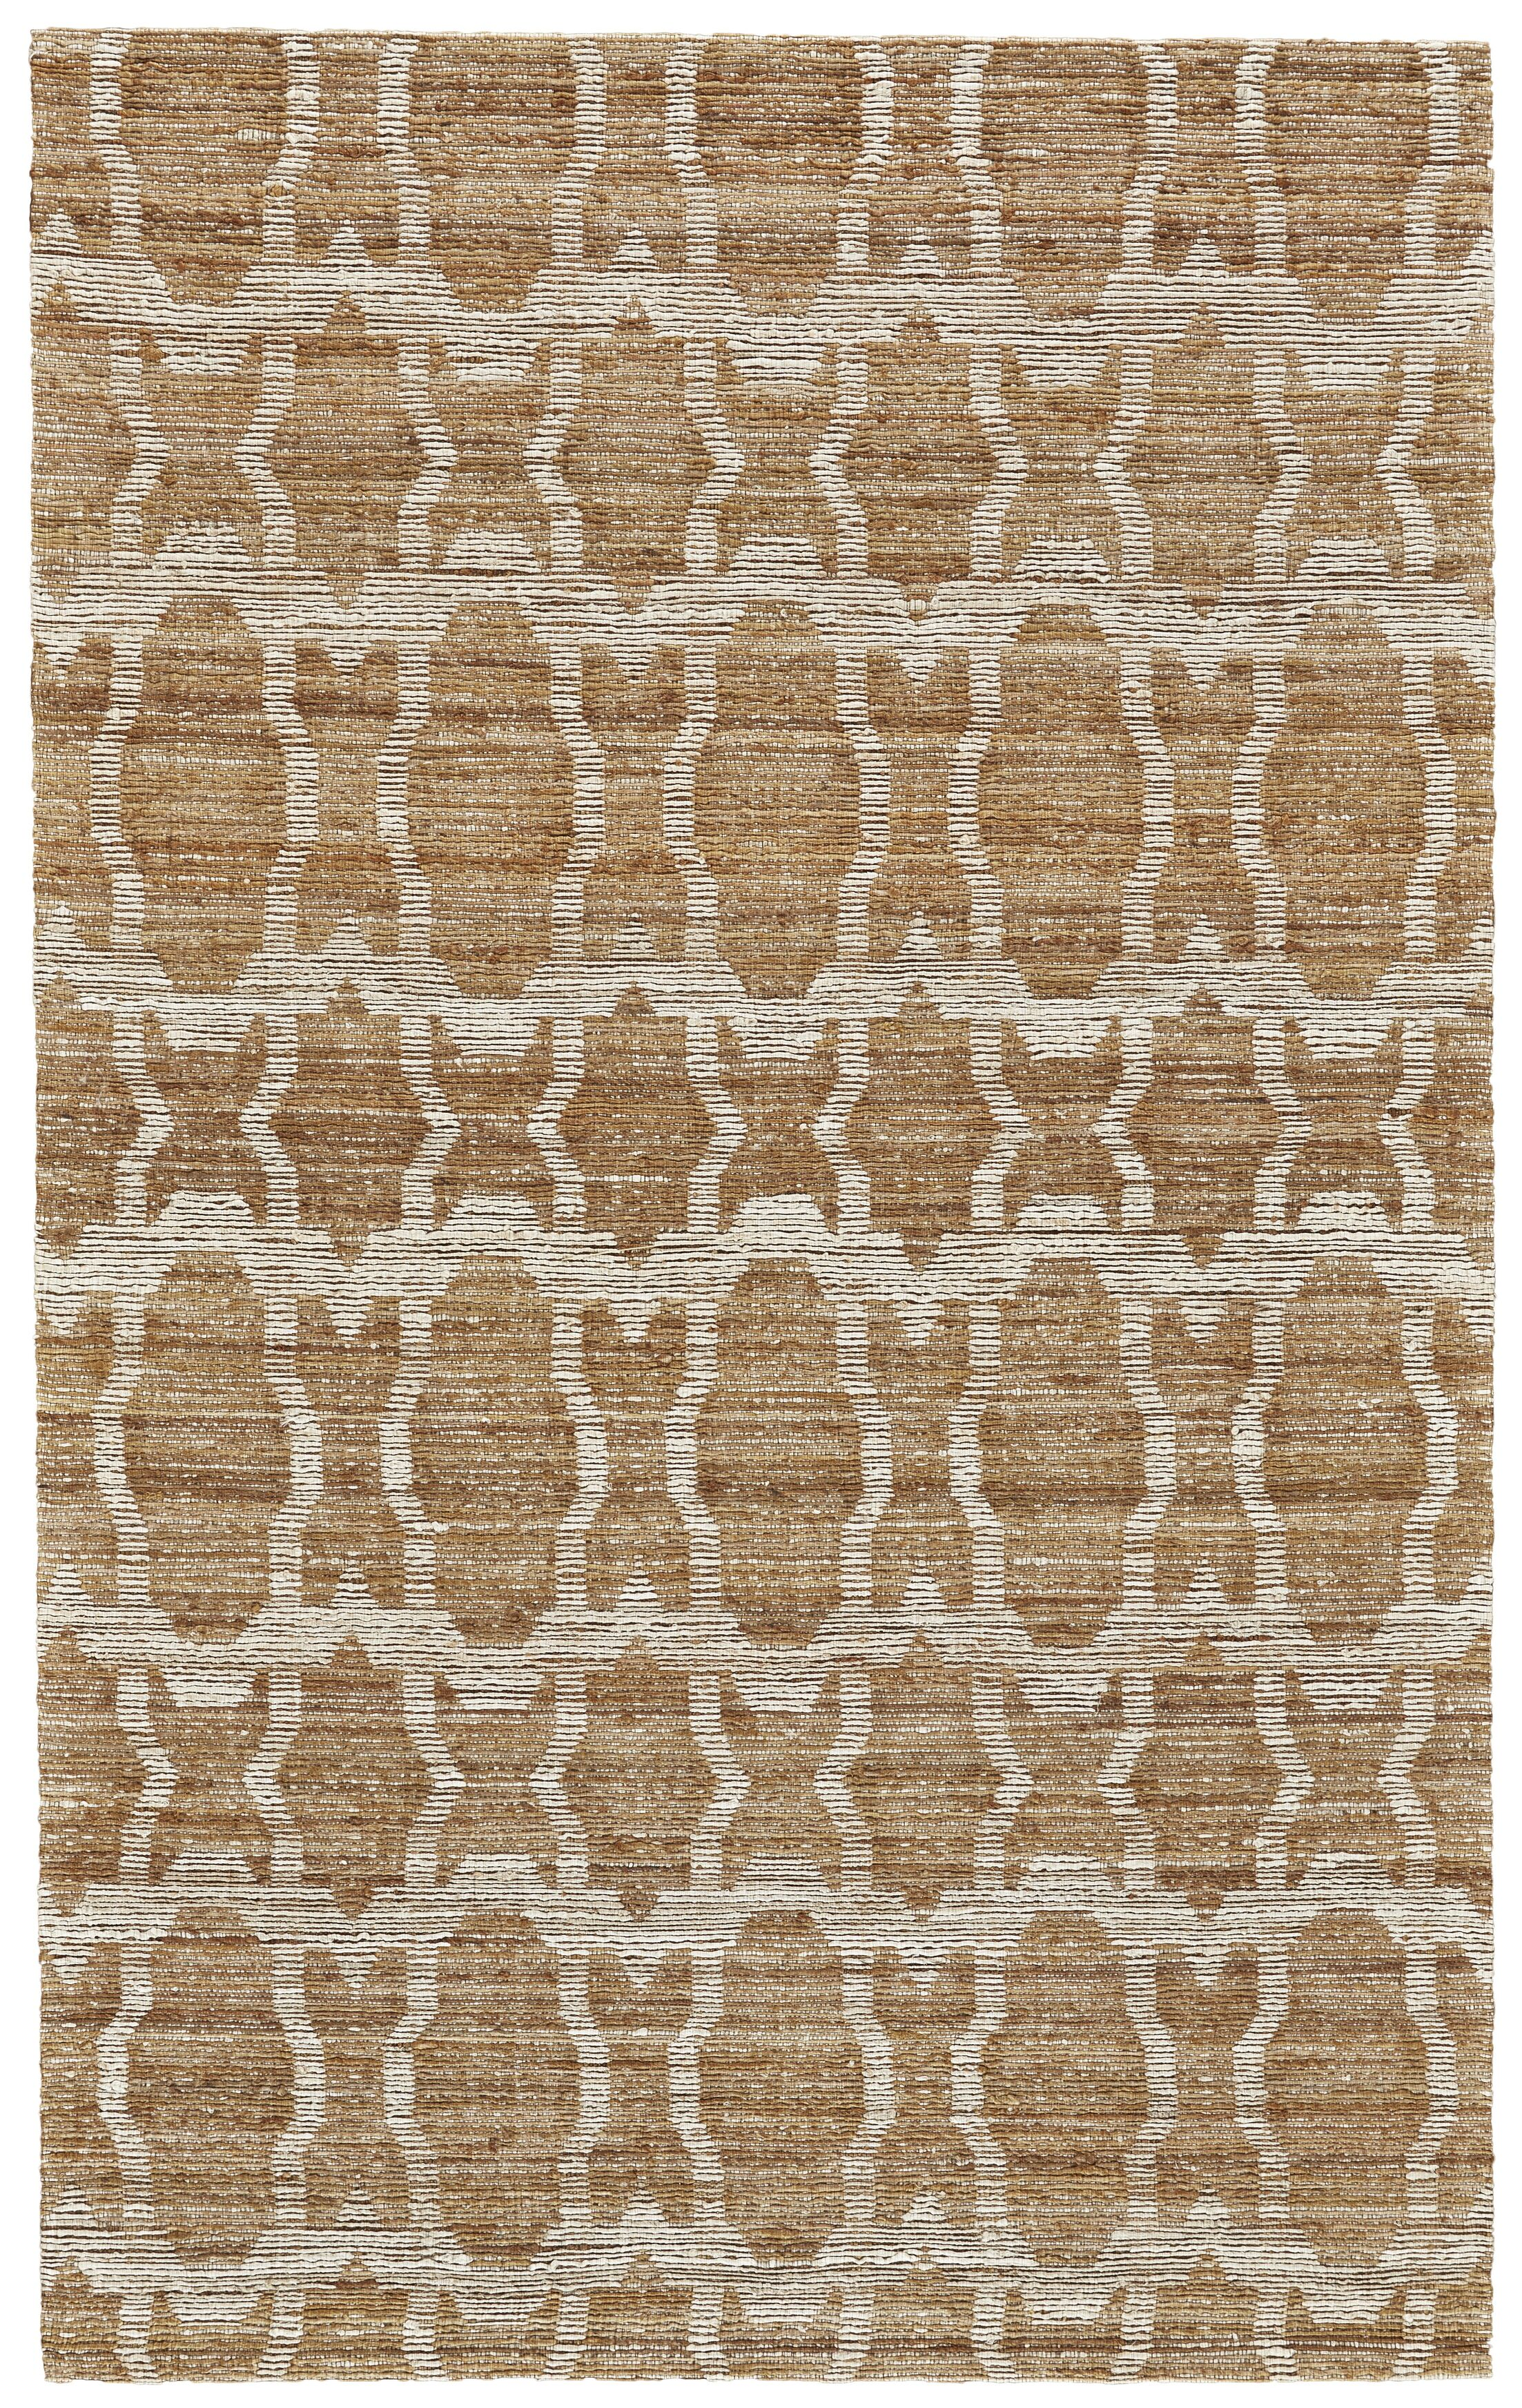 Reich Hand-Woven Gold Area Rug Rug Size: Rectangle 9'6